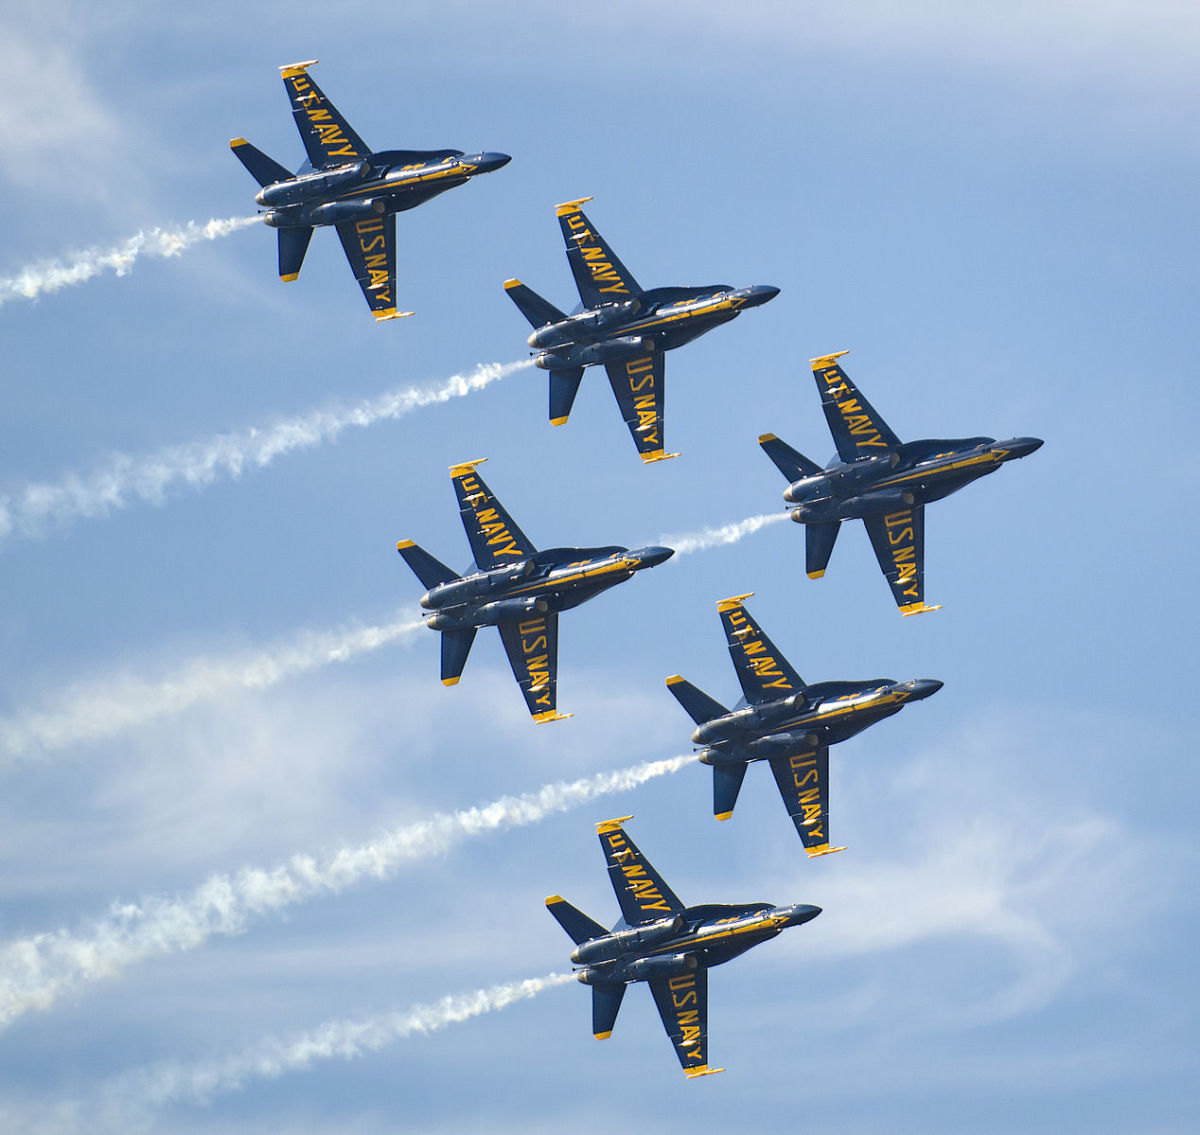 August 19th is Aviation Day.